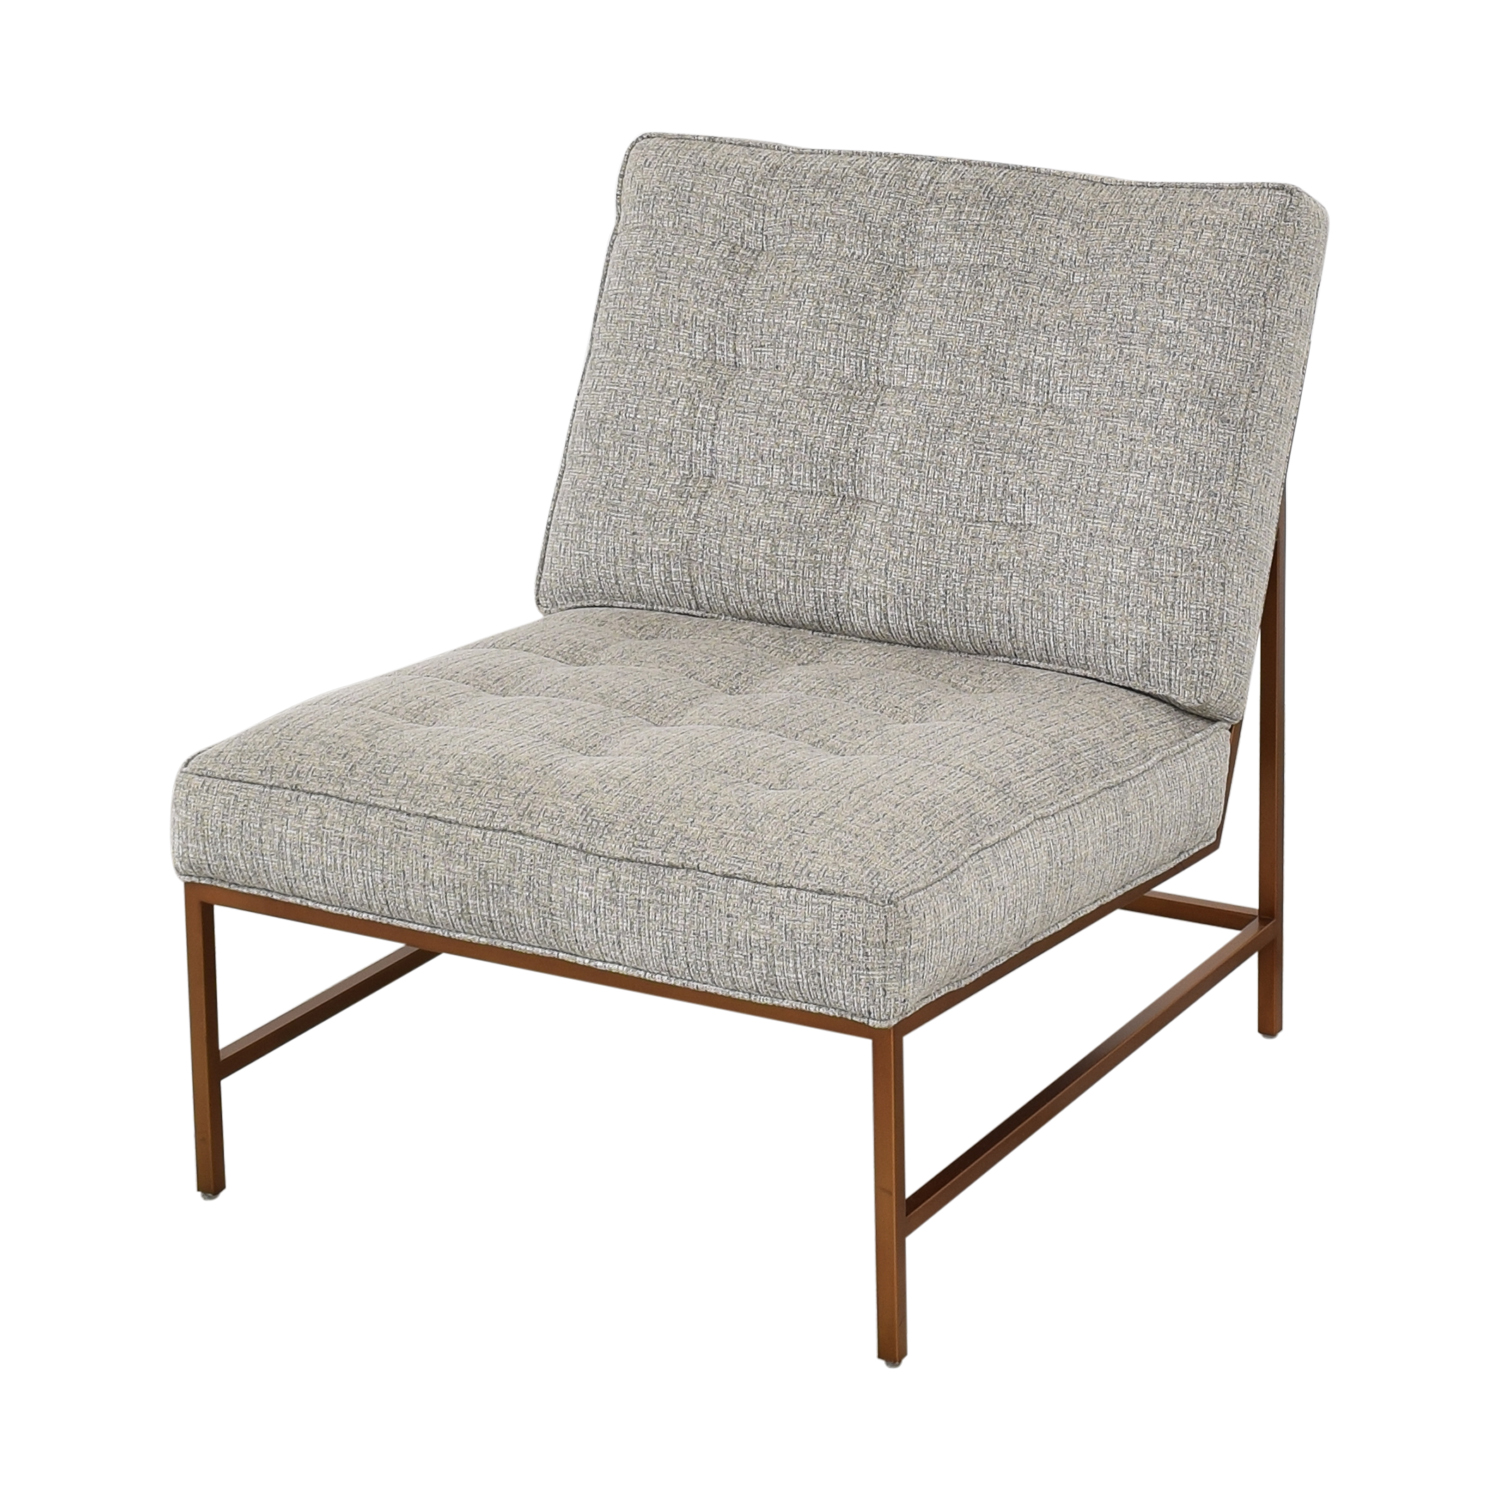 Mitchell Gold + Bob Williams Major Lounge Chair sale